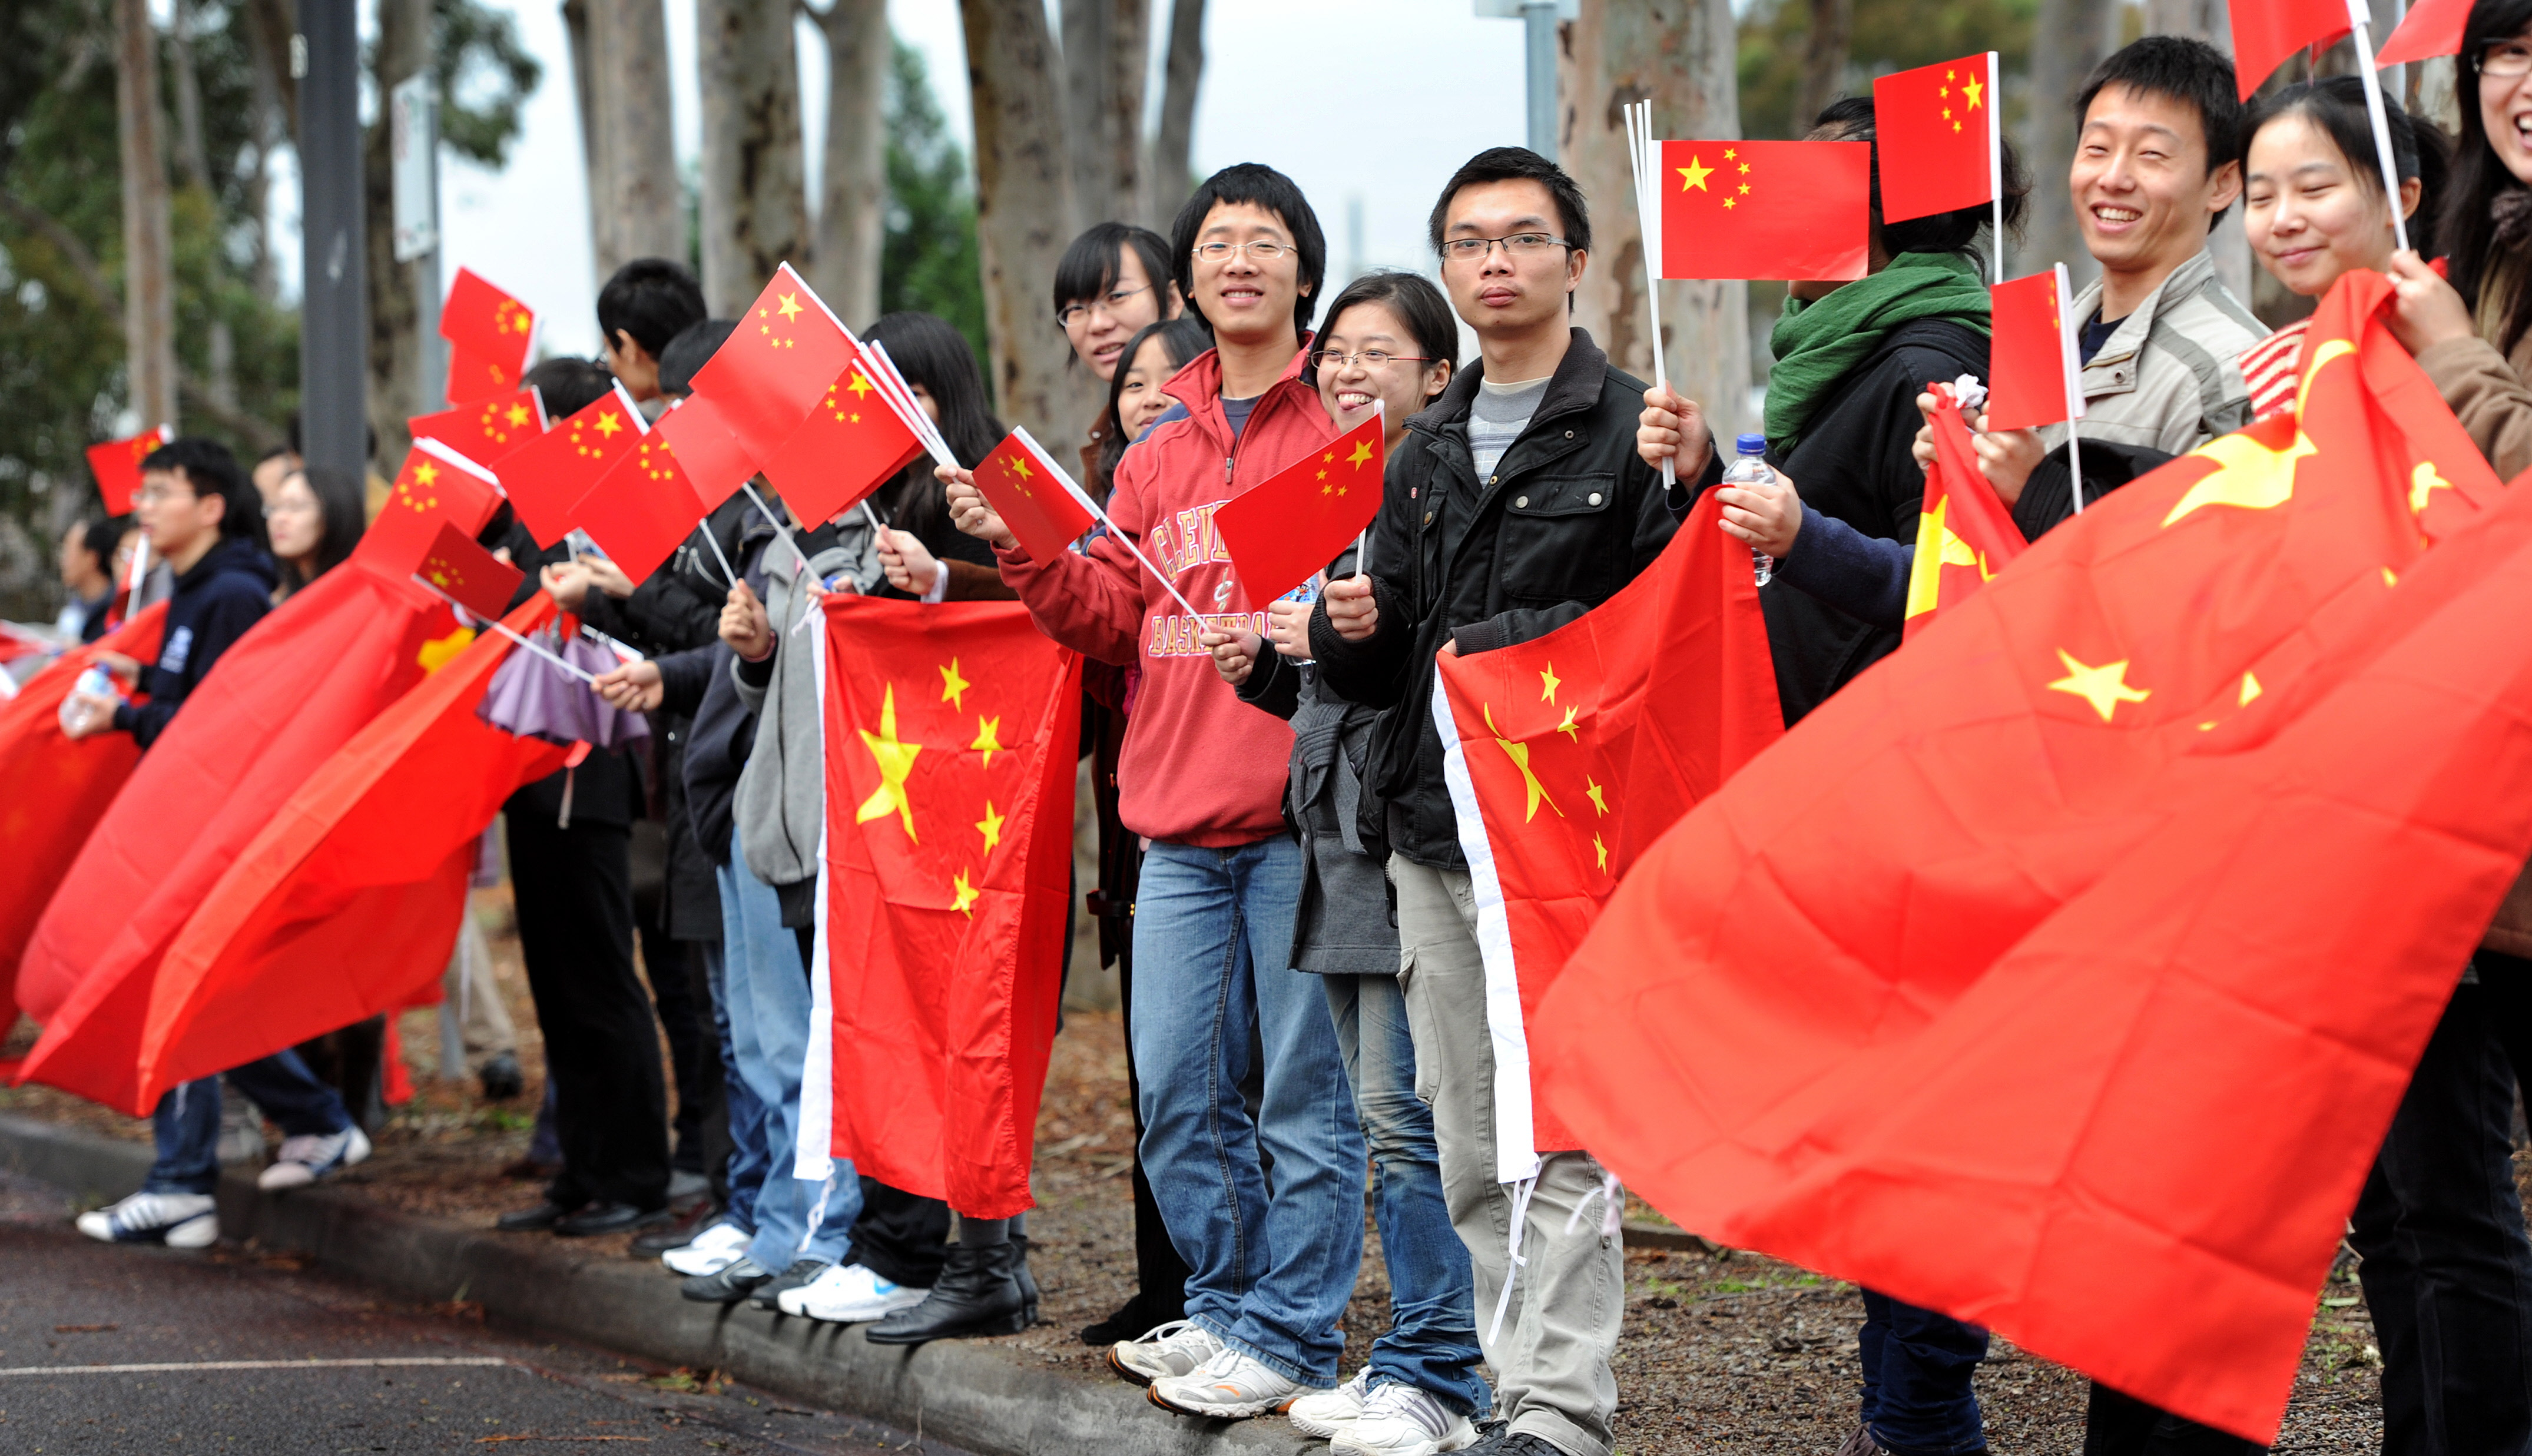 Chinese consular staff wave national flags in front of a demonstration by supporters of the Falungong spiritual movement outside the venue where China's Vice President Xi Jinping was opening Australia's first Chinese Medicine Confucius Institute. ( WILLIAM WEST/AFP via Getty Images)